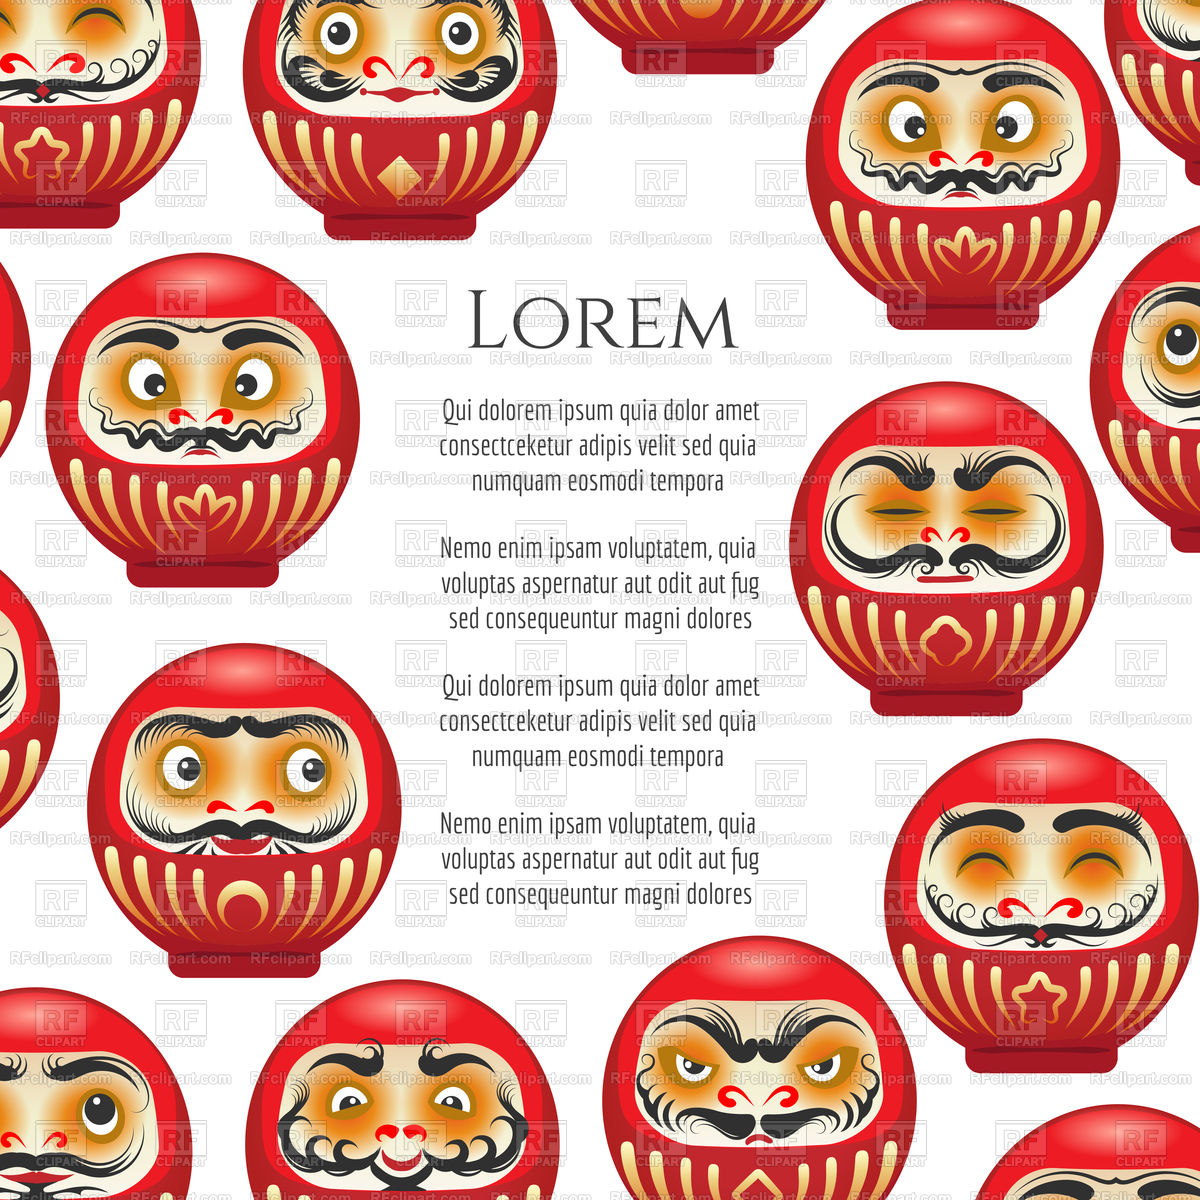 Japanese red daruma dolls poster design Stock Vector Image.